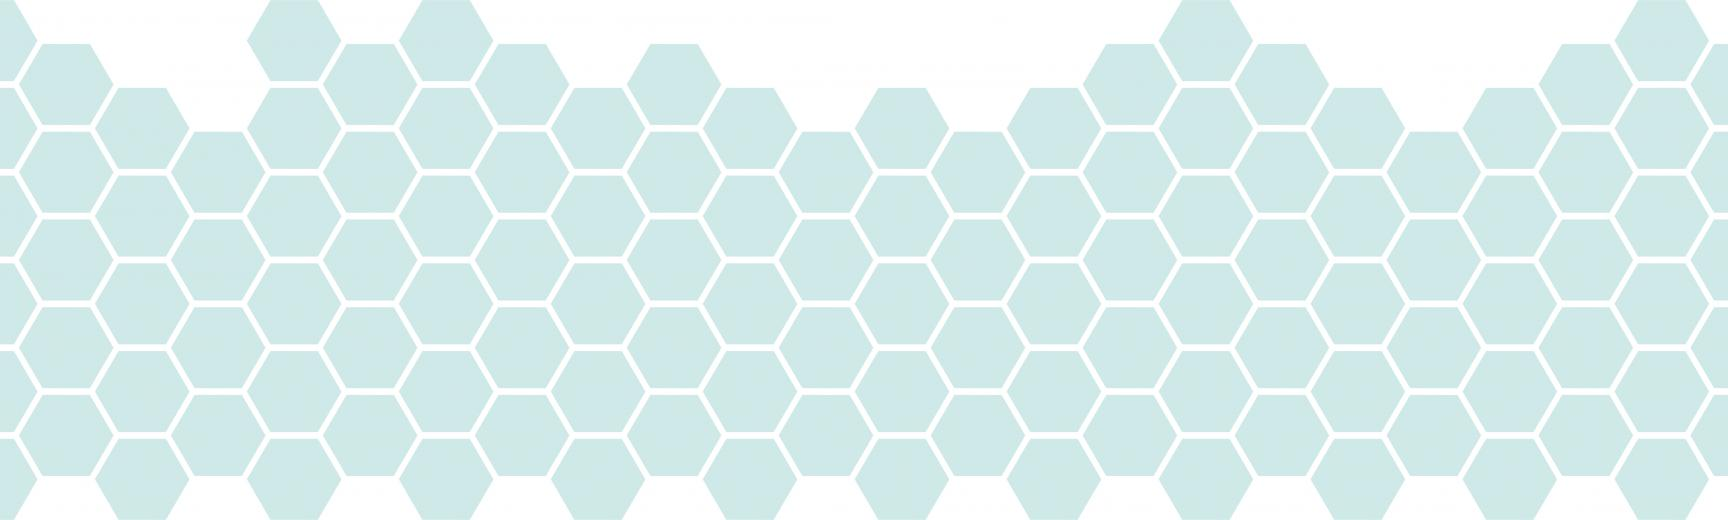 light blue hexagon pattern